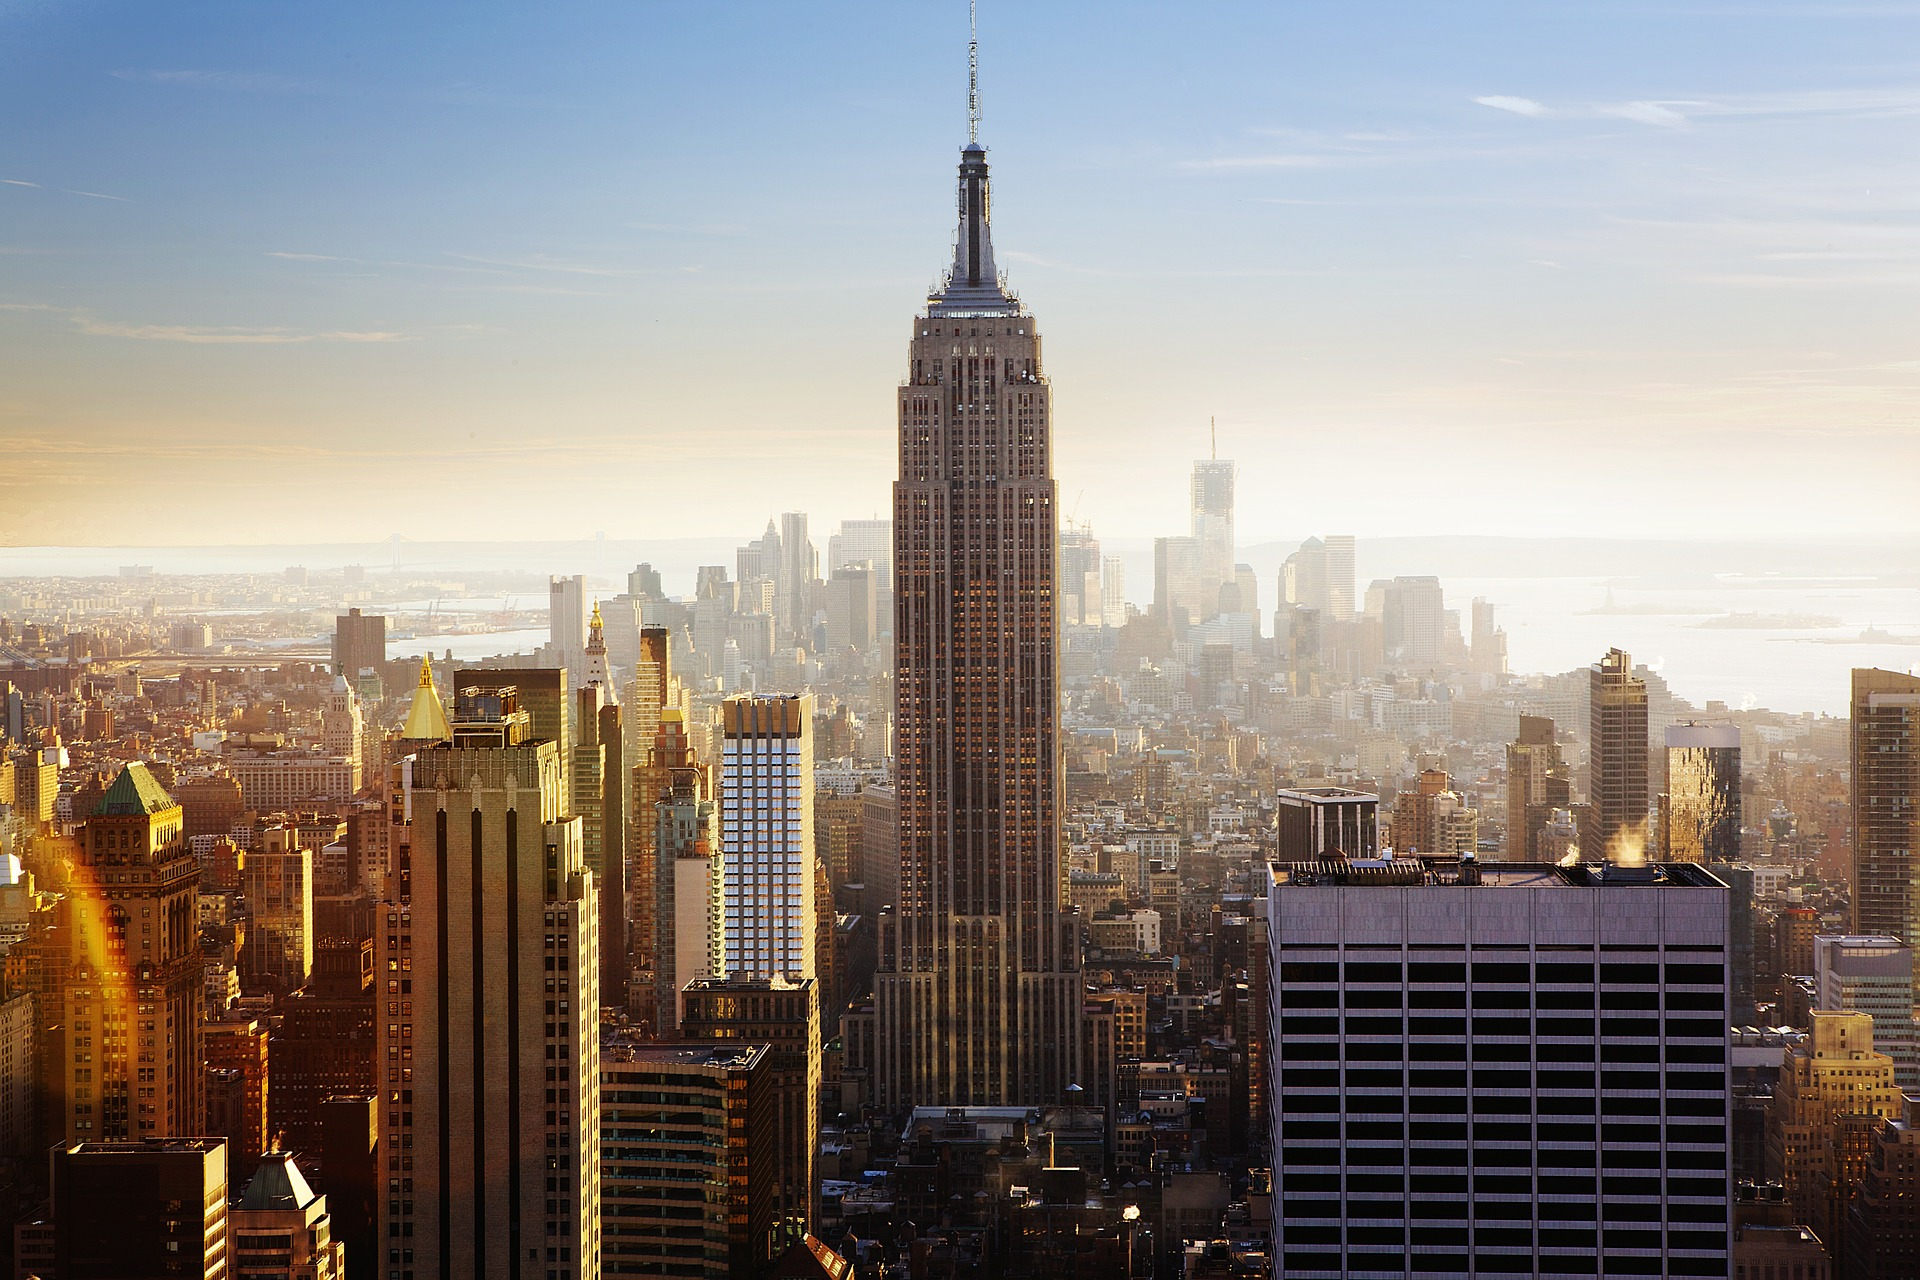 empire-state-building-1081929_1920 (2)